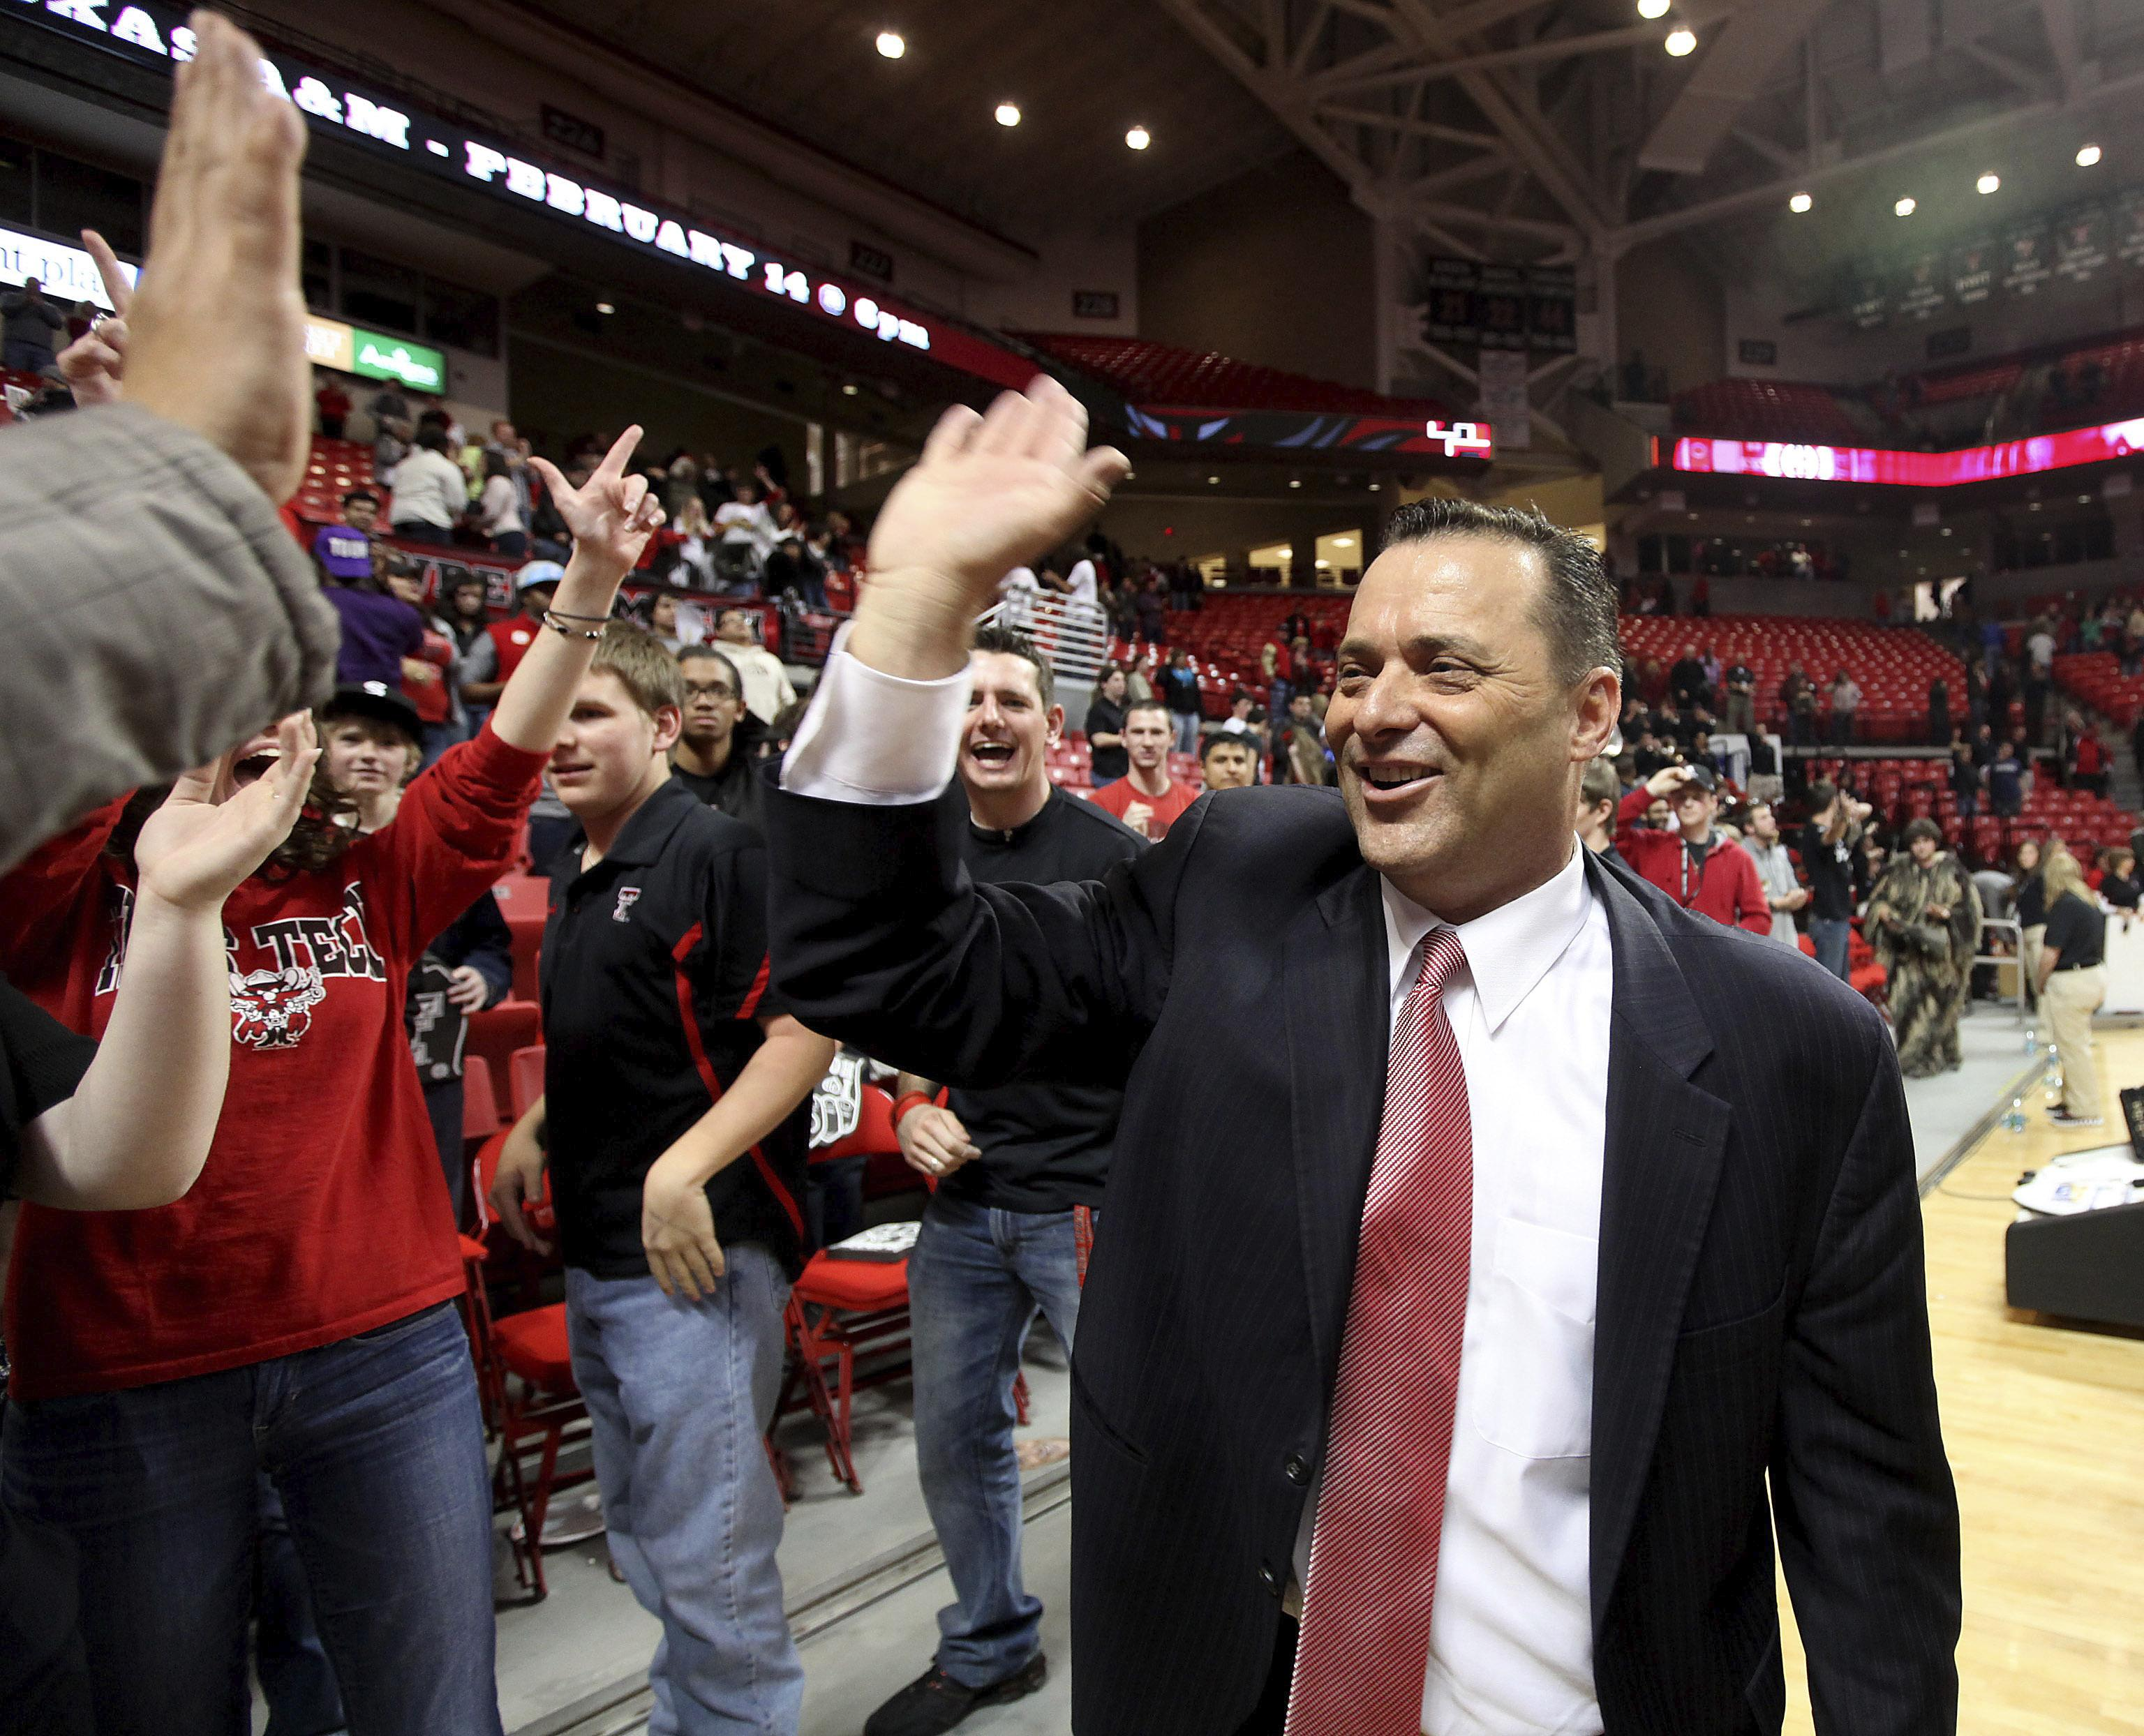 Texas Tech coach Billy Gillispie celebrates with fans after defeating Oklahoma in an NCAA college basketball game in Lubbock Texas. Gillispie was named head coach at Tarleton State taking over a program making the transition